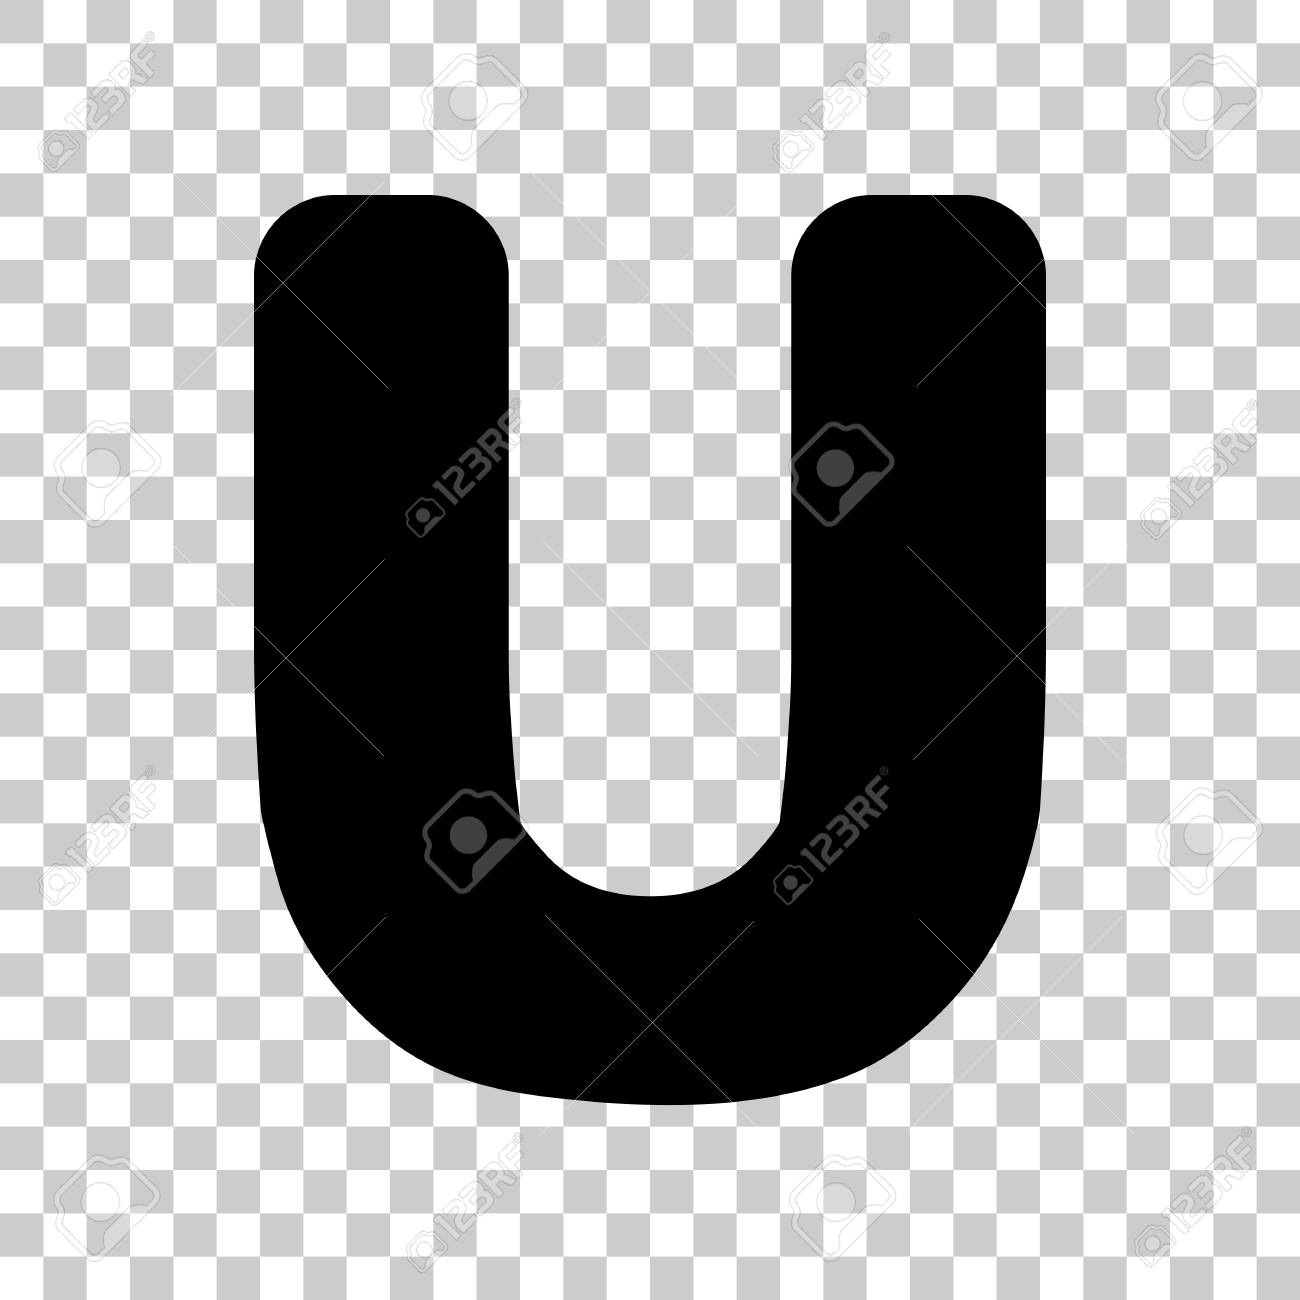 letter u template - Ideal.vistalist.co